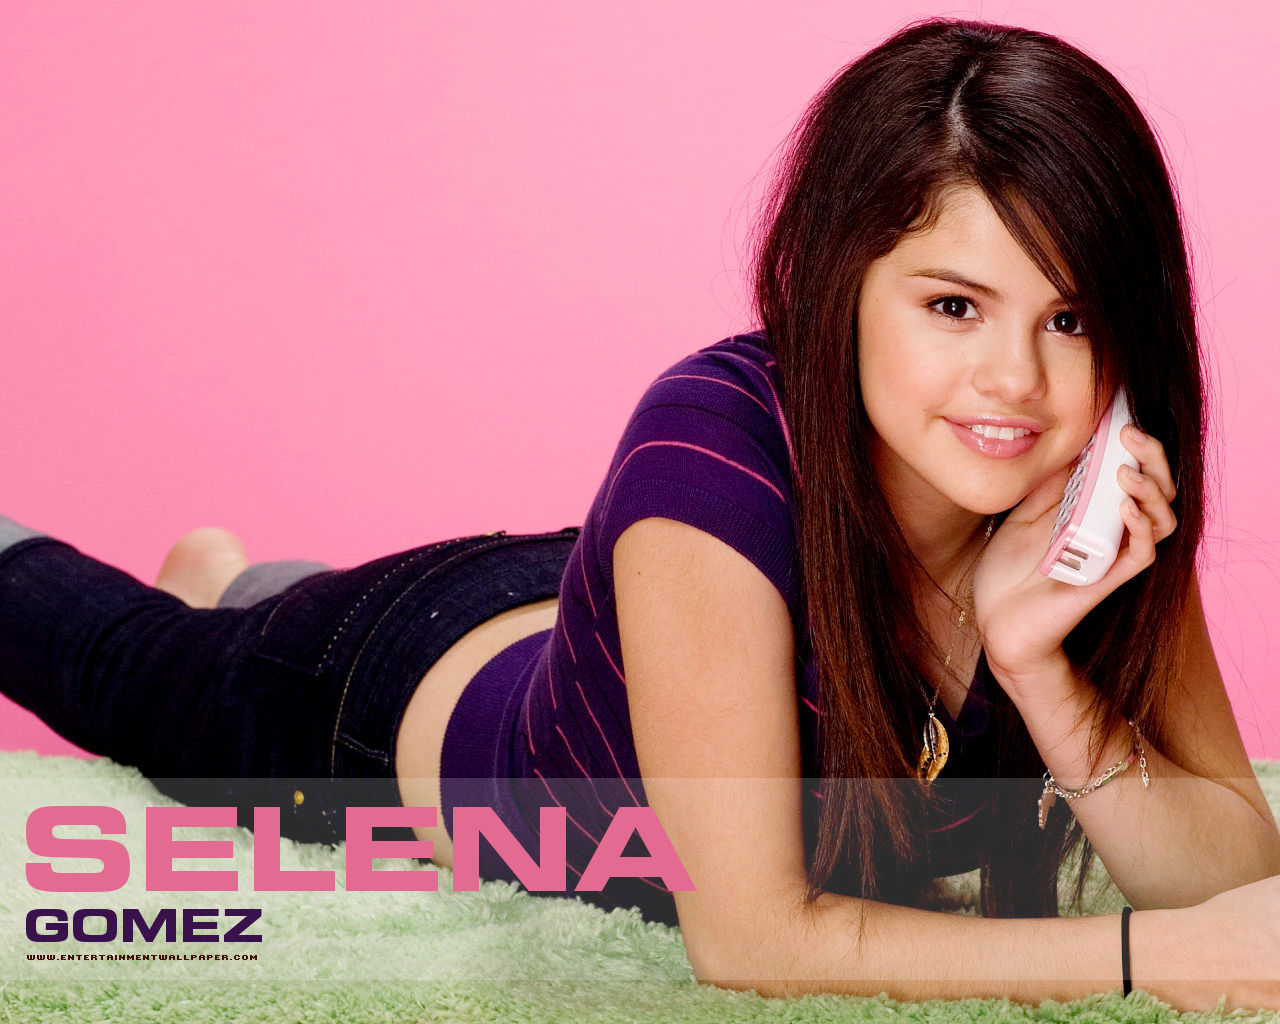 Wallpapers de selena gomez wallpapers de selena gomez iconos wallpapers de selena gomez wallpapers de selena gomez iconos by labs2ntooz voltagebd Image collections